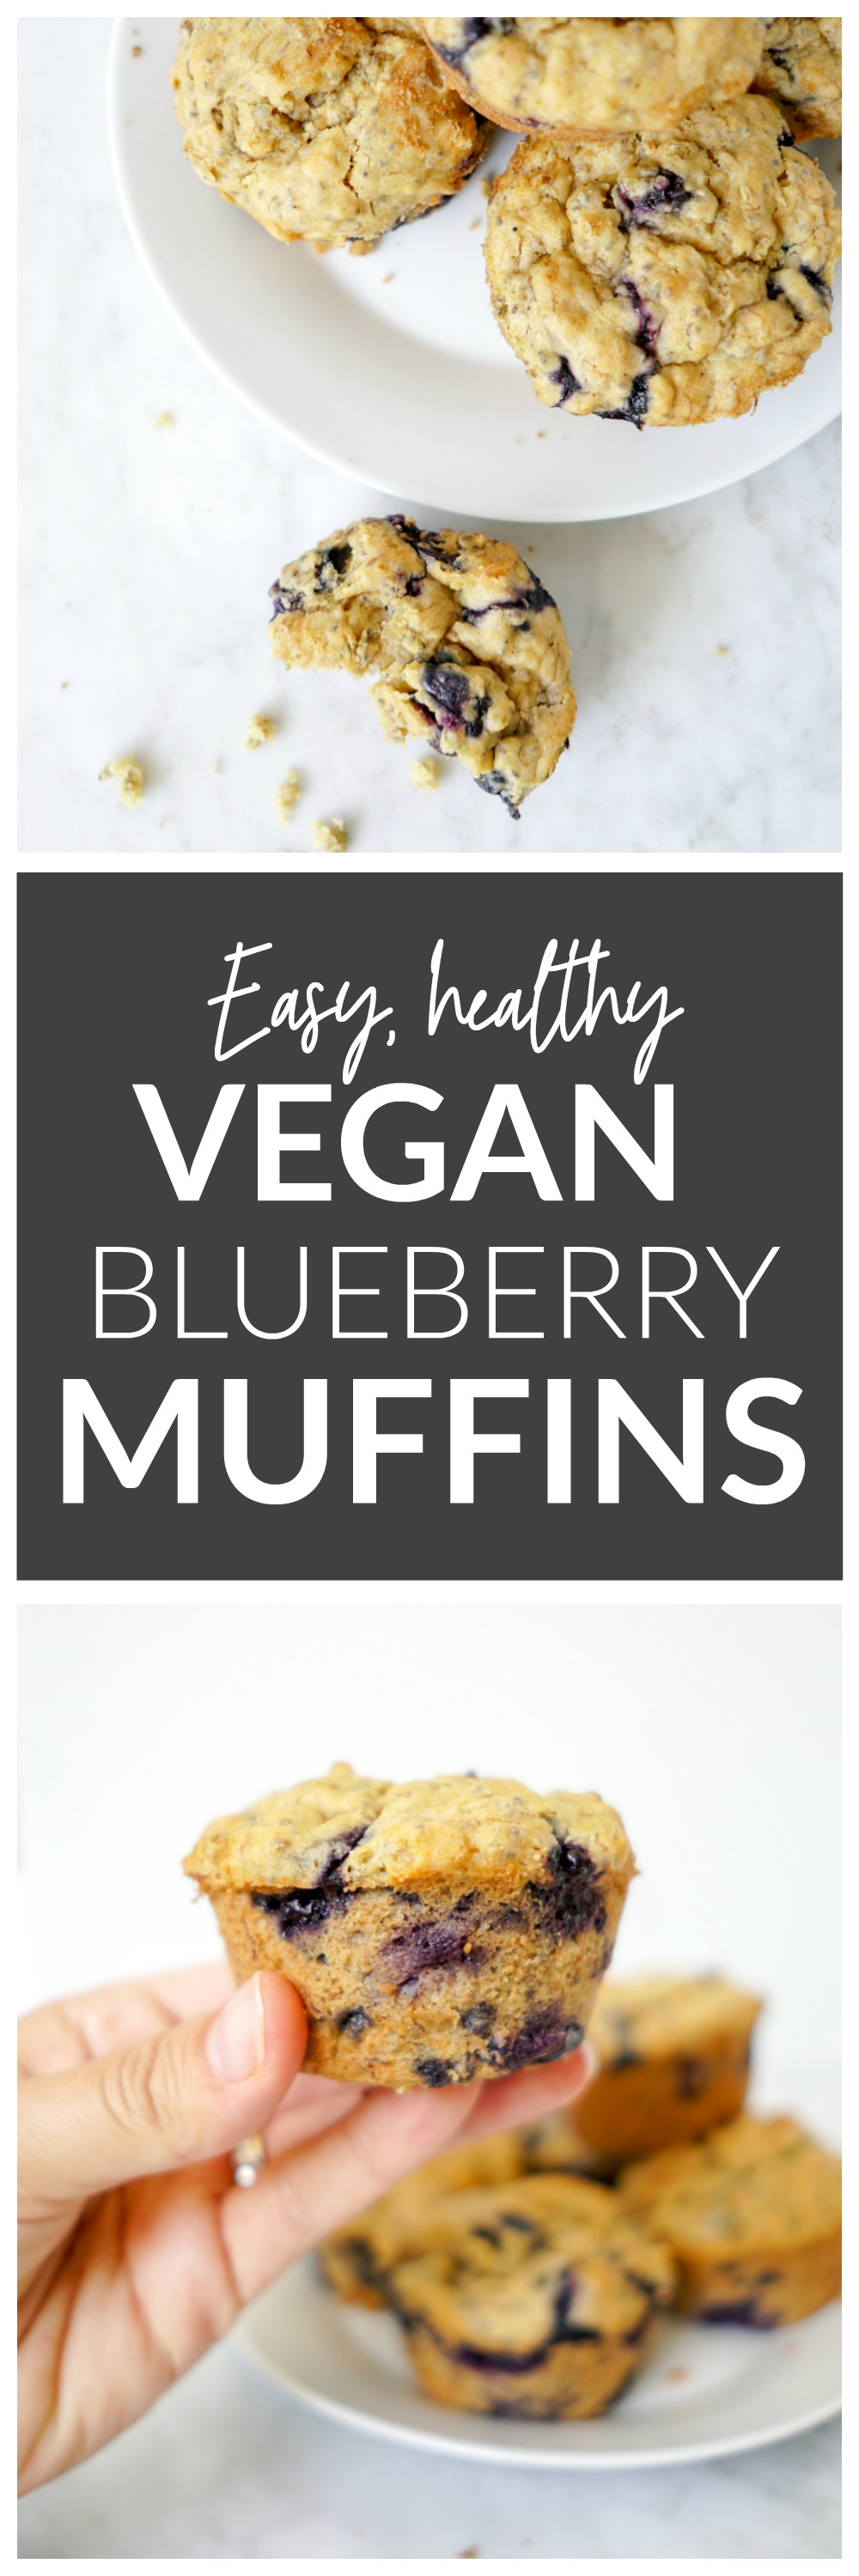 Easy, healthy Vegan Blueberry Muffins Recipe